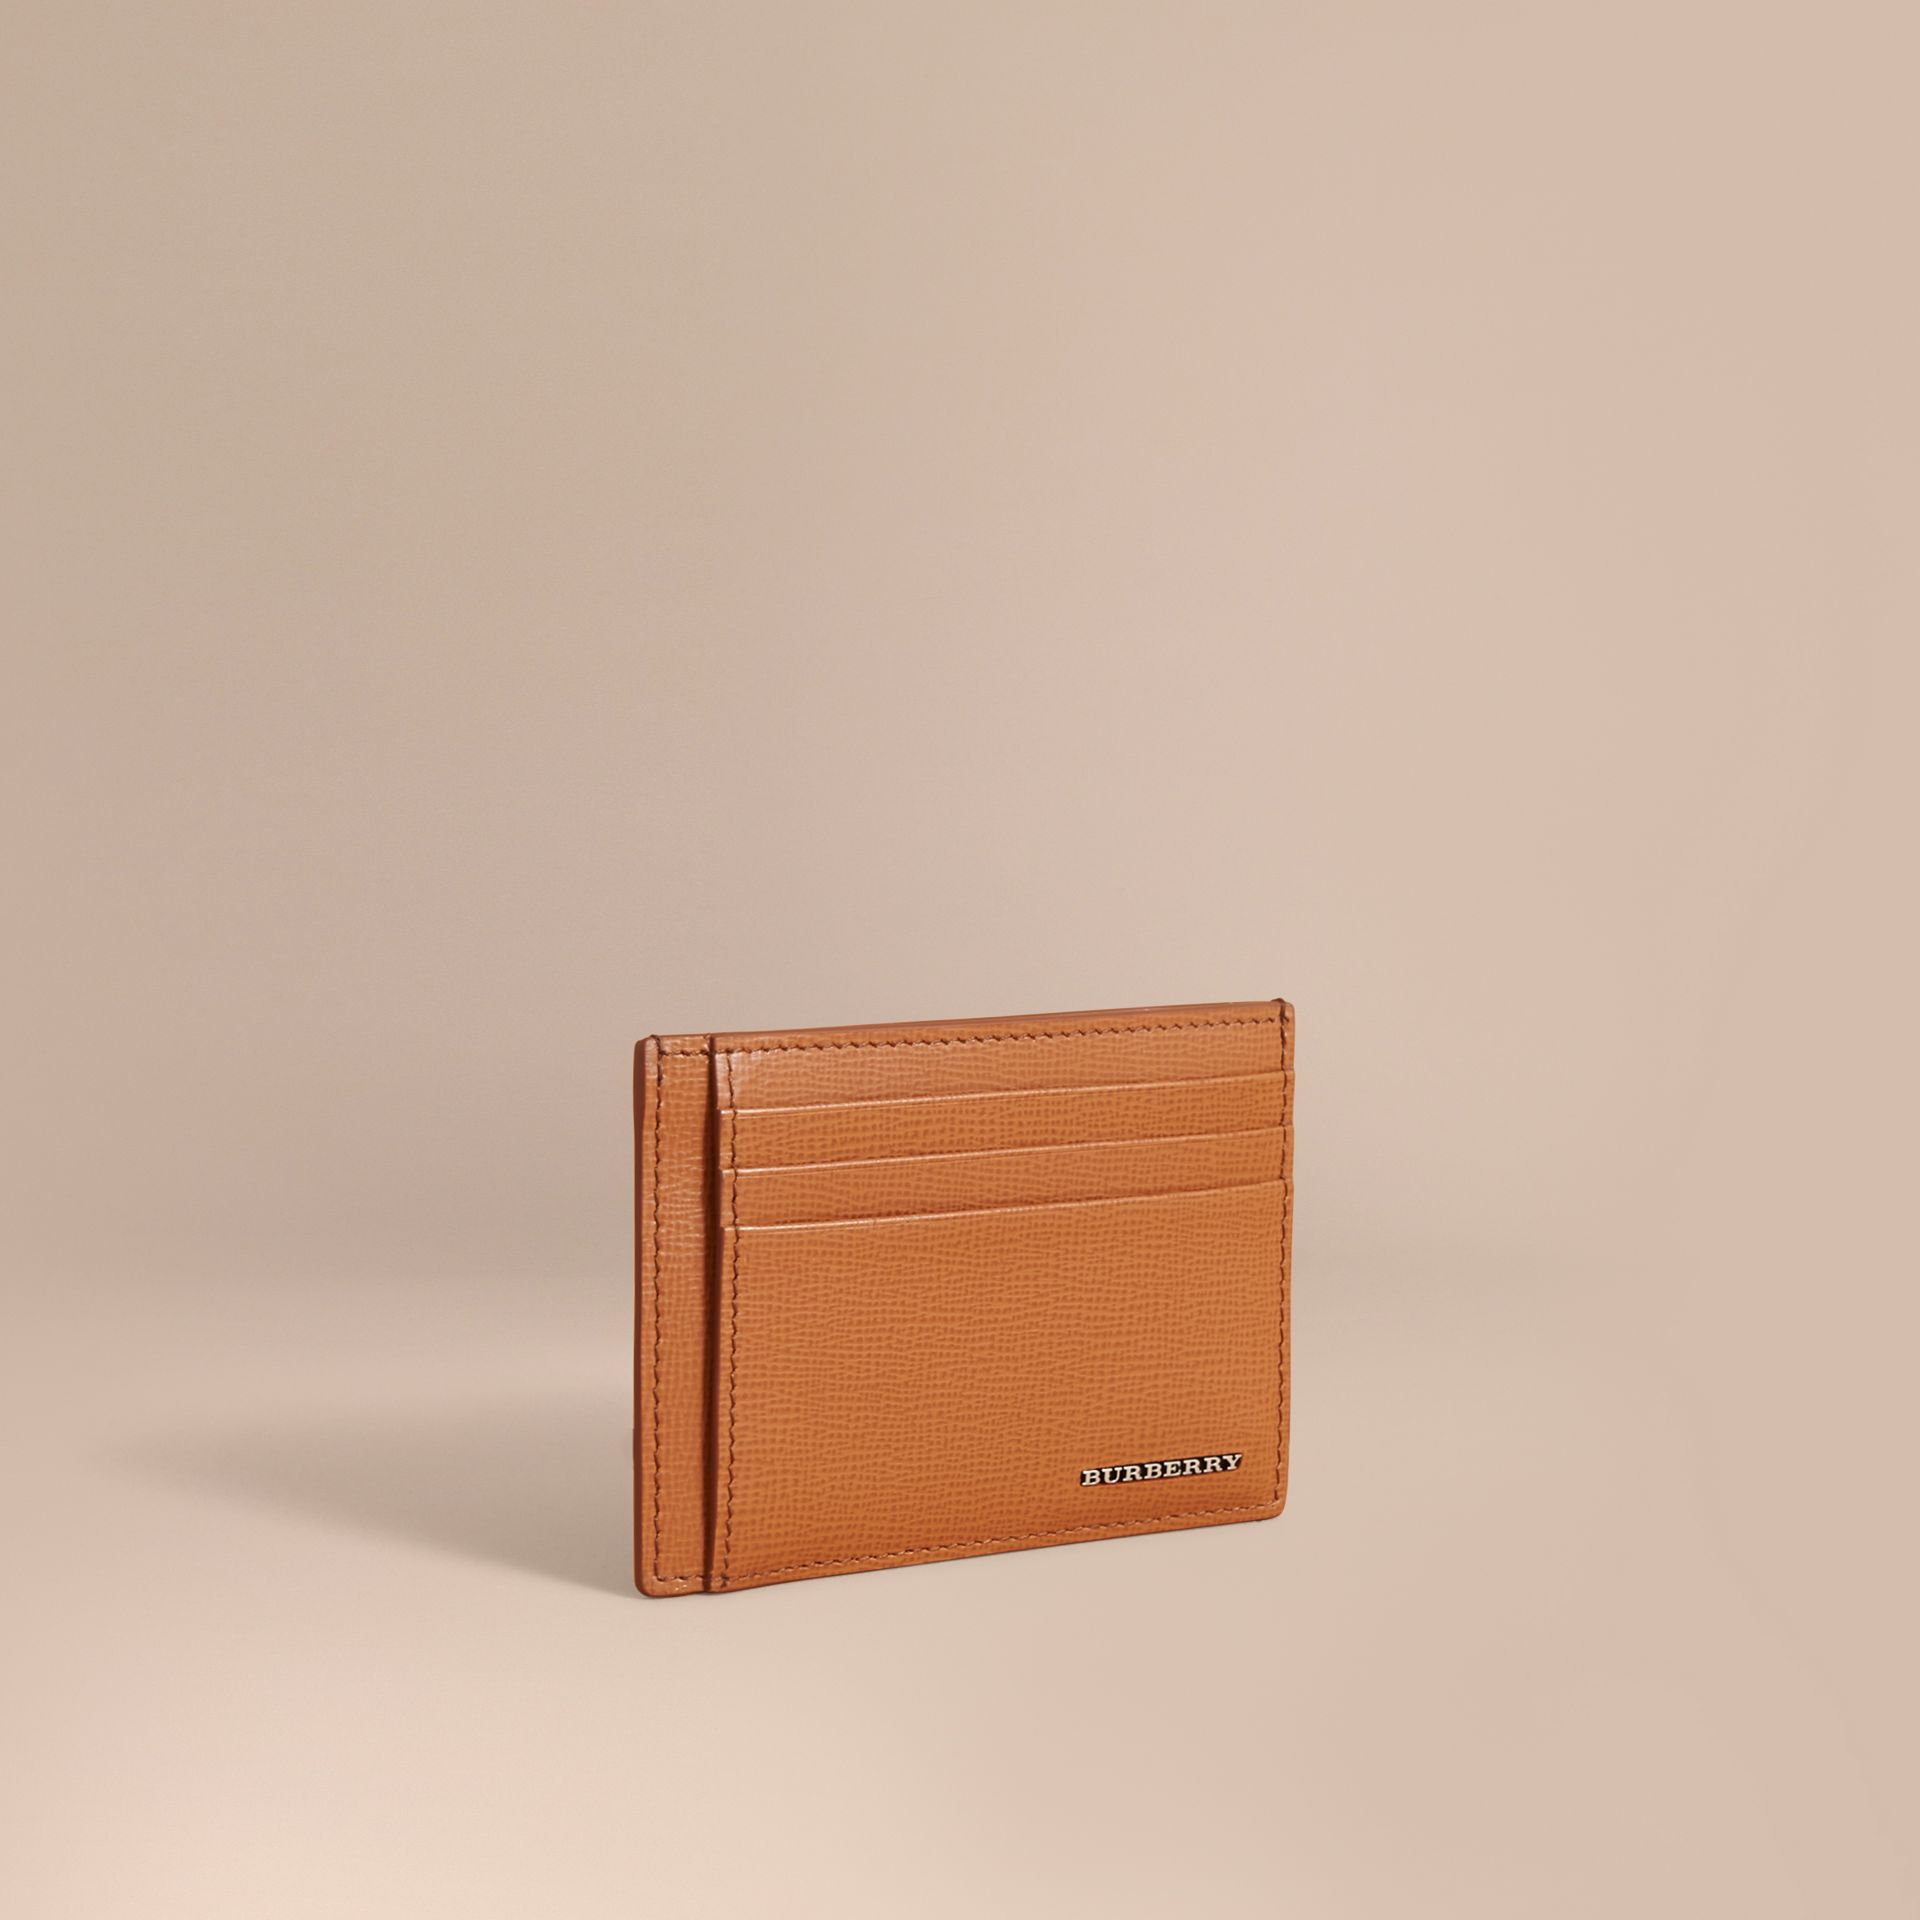 London Leather Money Clip Card Case in Tan - Men | Burberry United Kingdom - gallery image 1